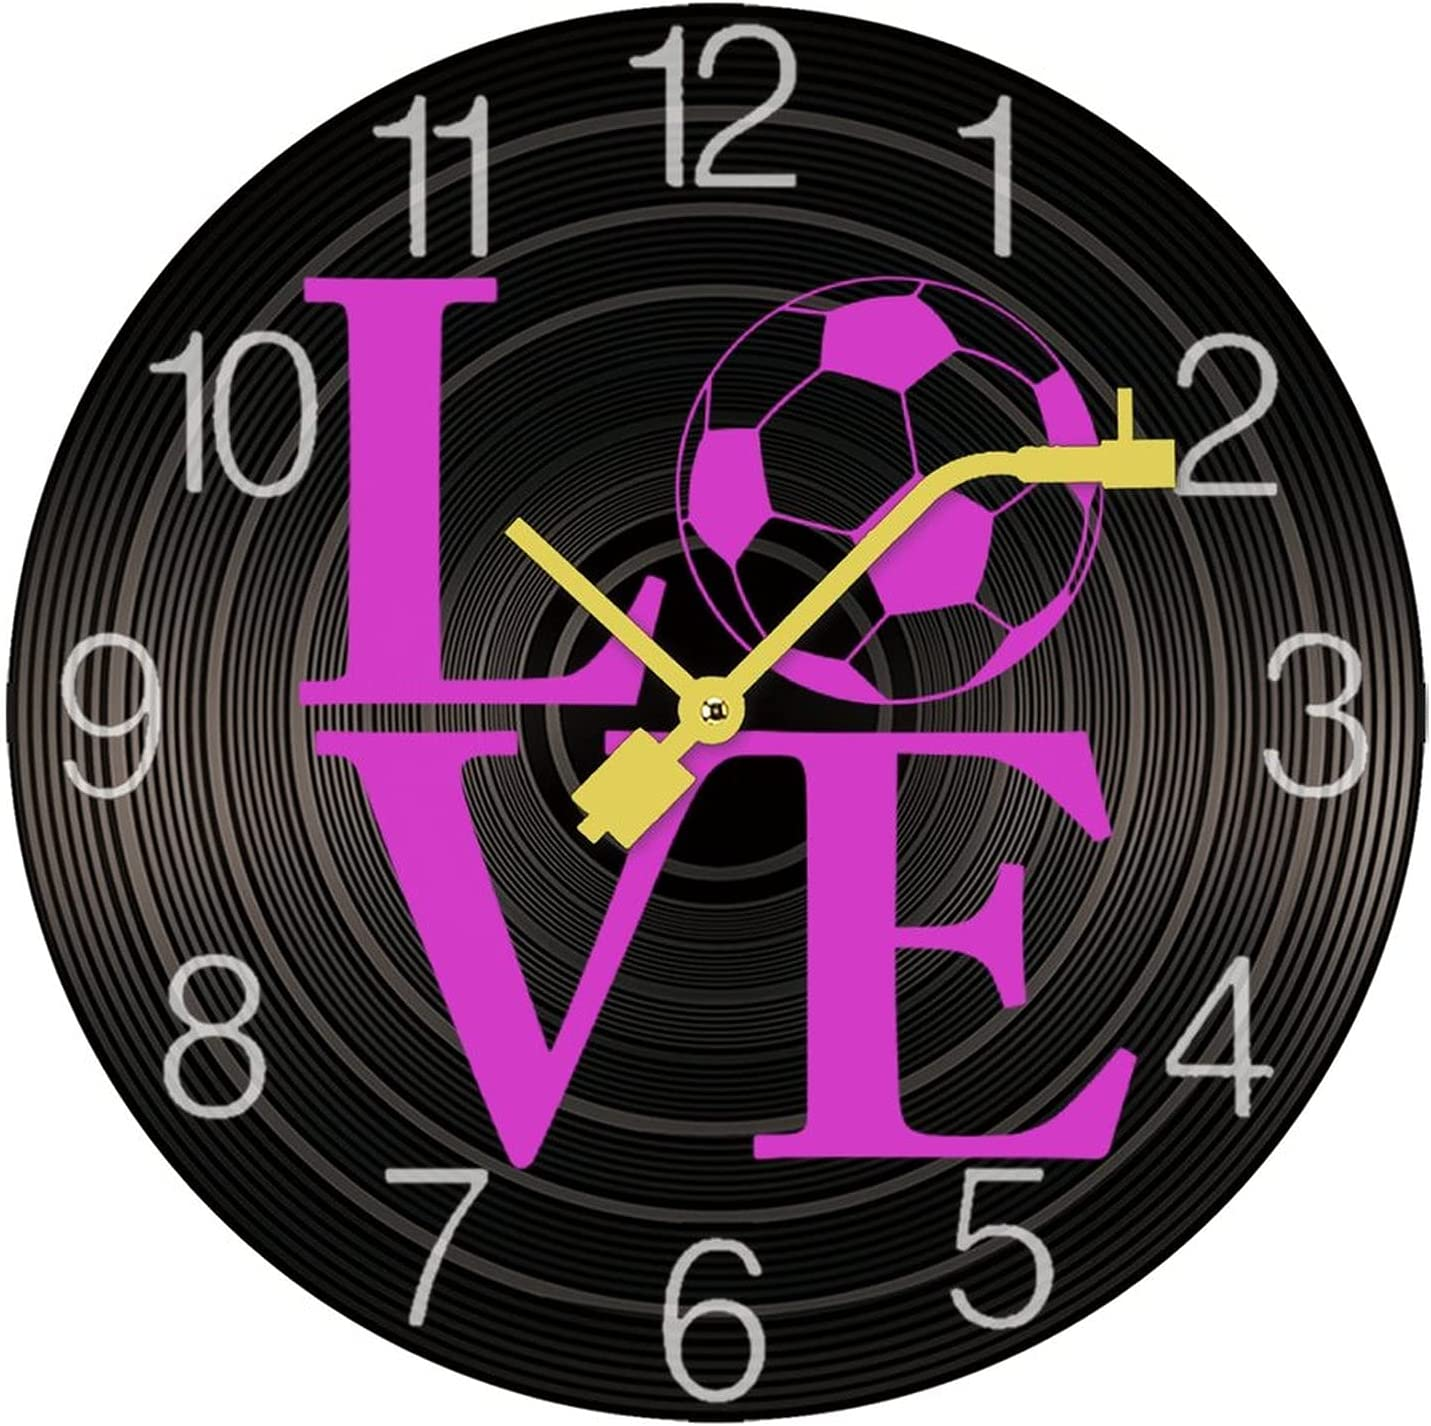 I Love Soccer Record Wall Frameless Di Overseas parallel import regular item Stylish ! Super beauty product restock quality top! Clock Personality